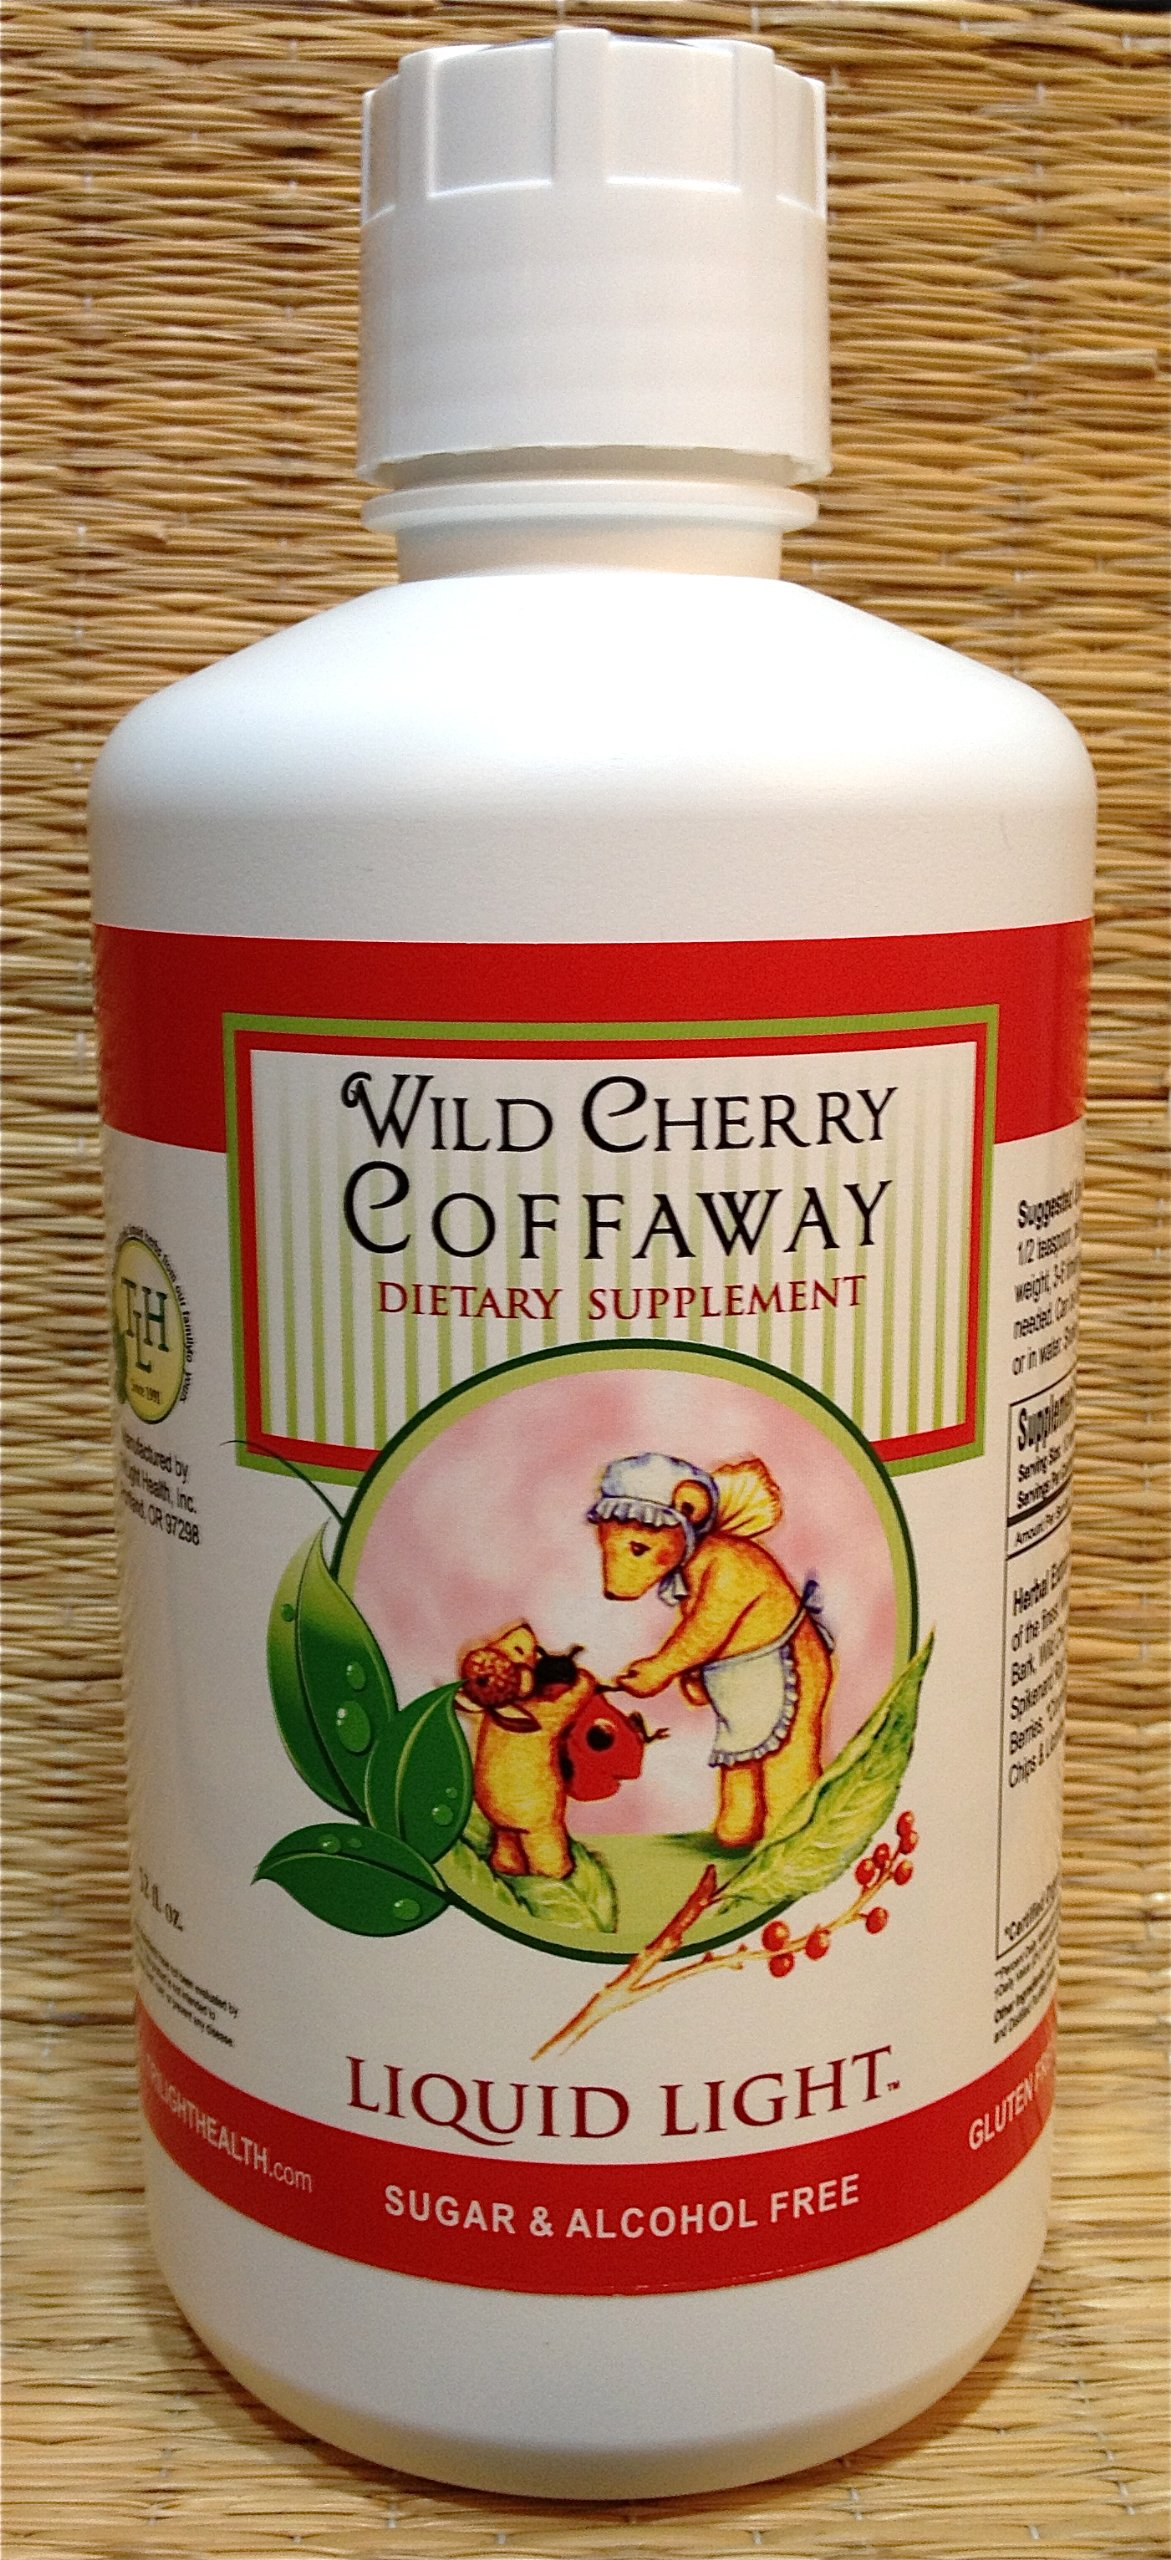 Wild Cherry Coffaway (32 oz Bottle) - Cold Season Support, All Natural Cough Syrup.